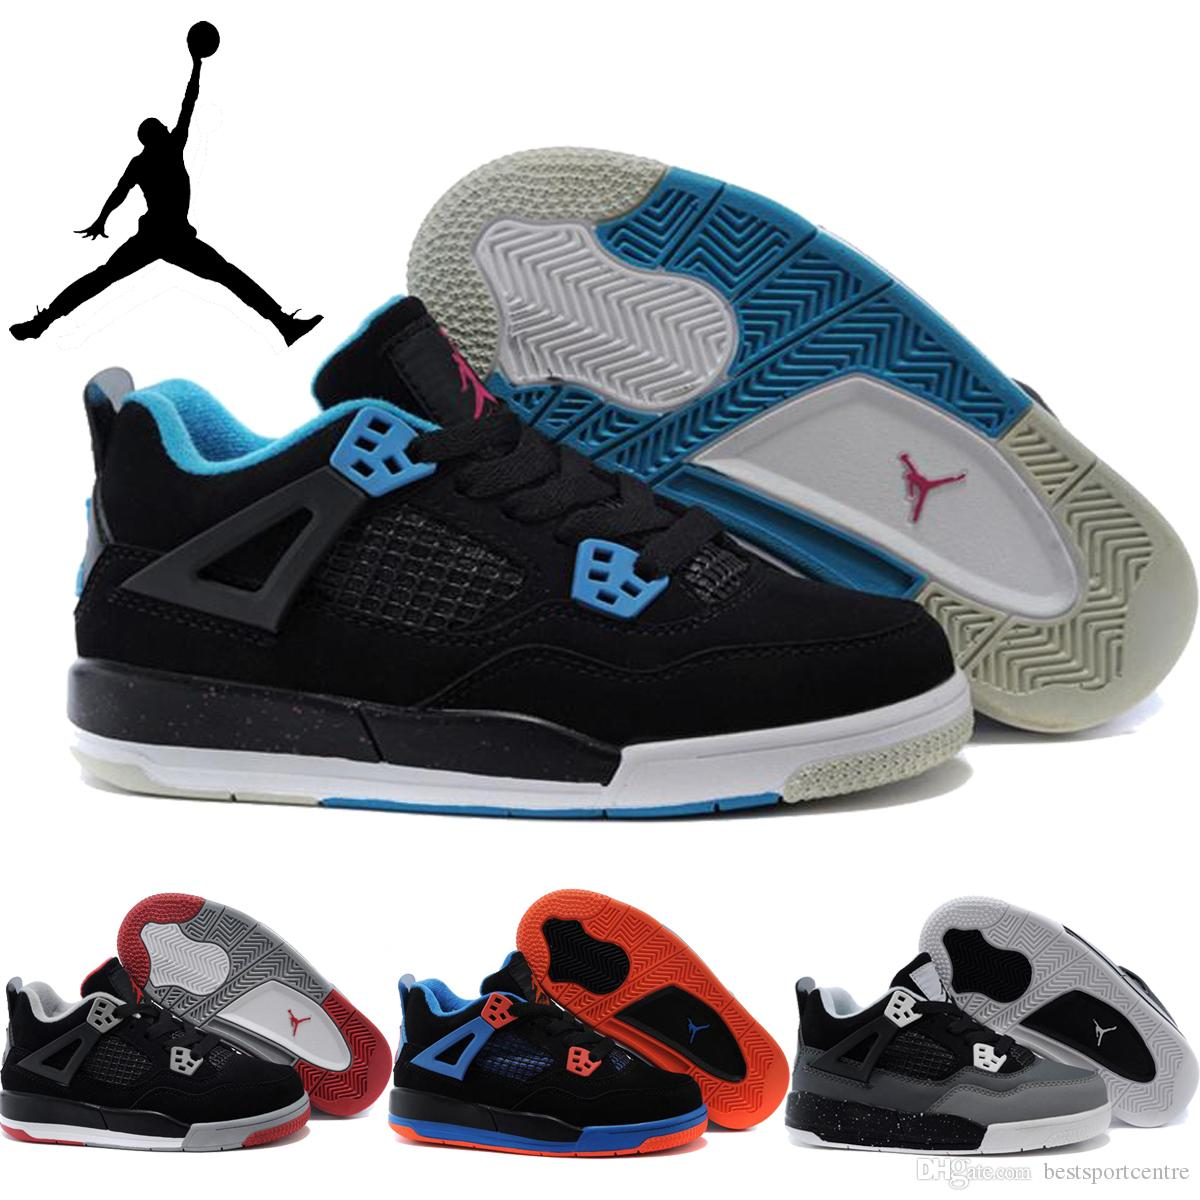 nike jordan shoes boys